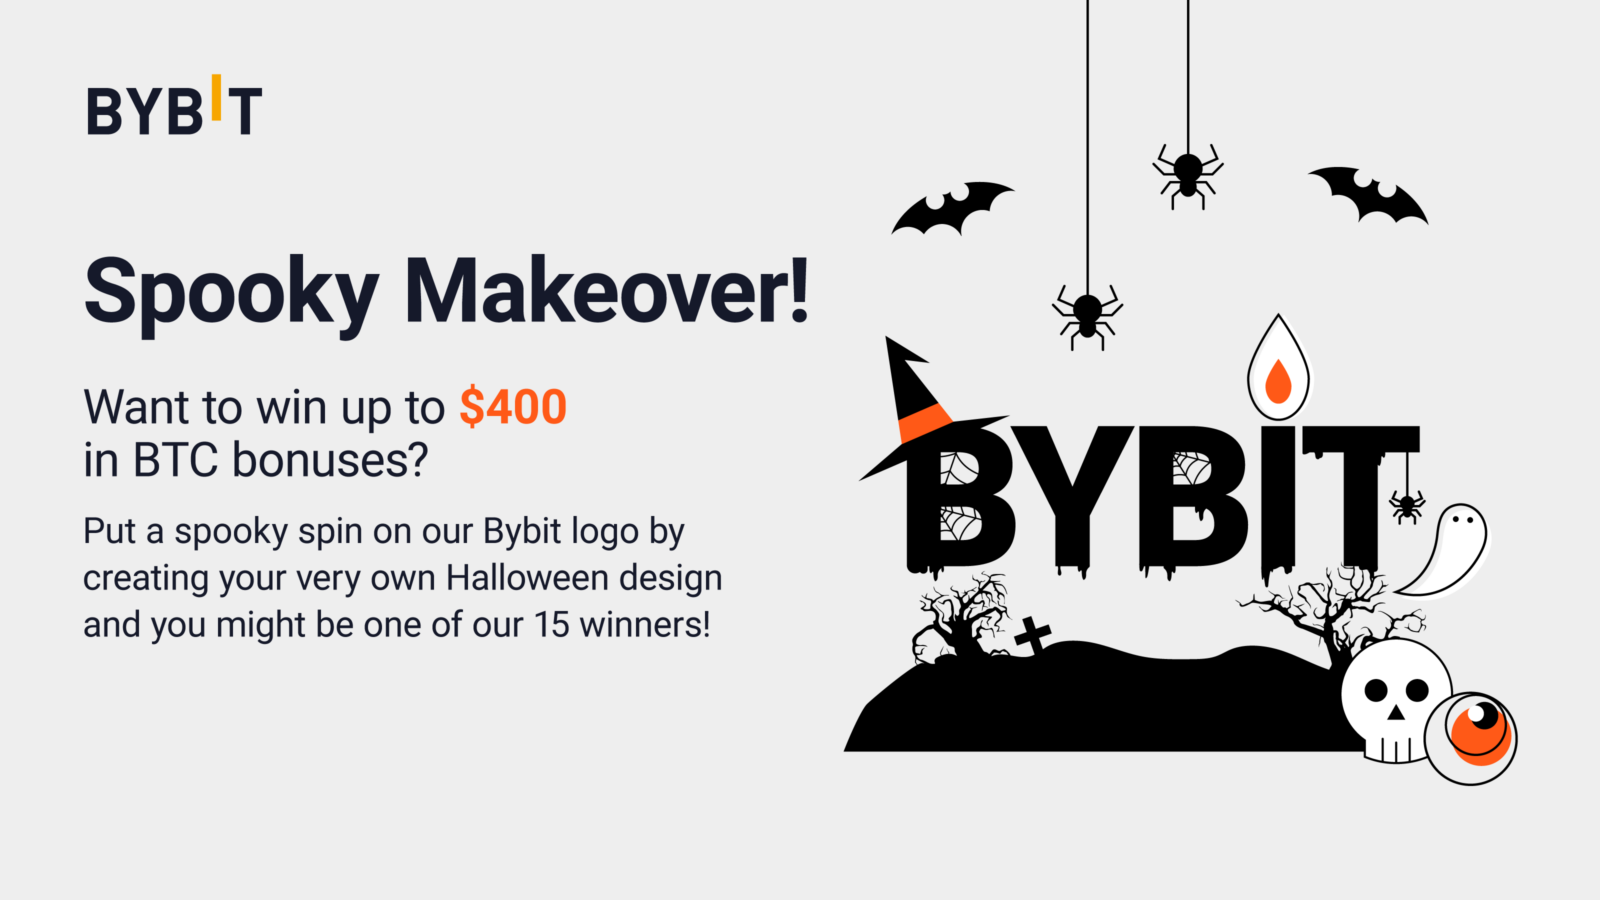 Bybit Spooky Makeover 2021